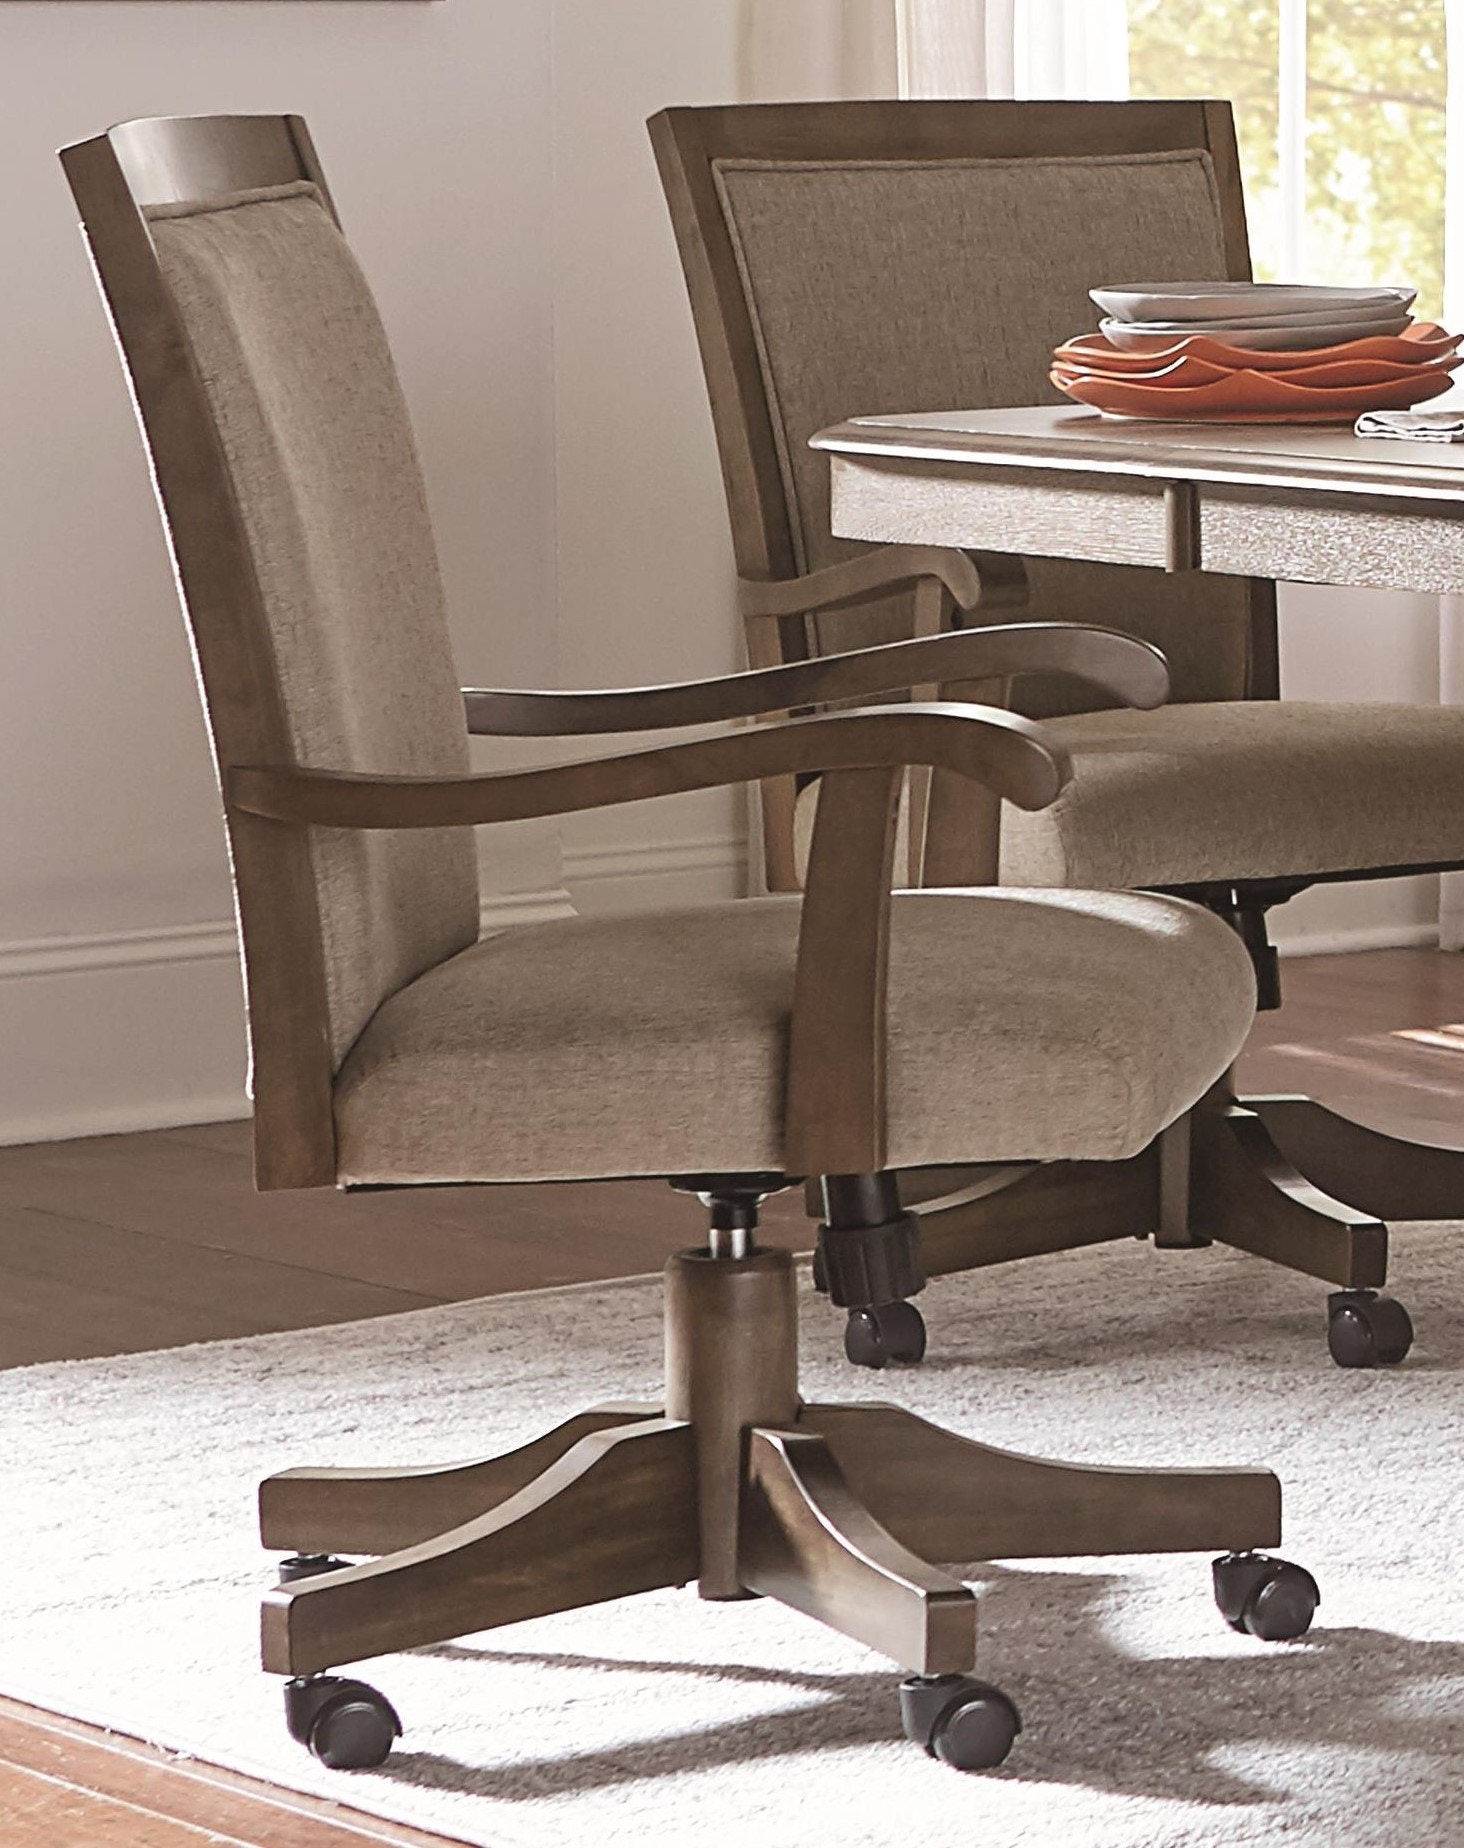 dining chairs casters swivel